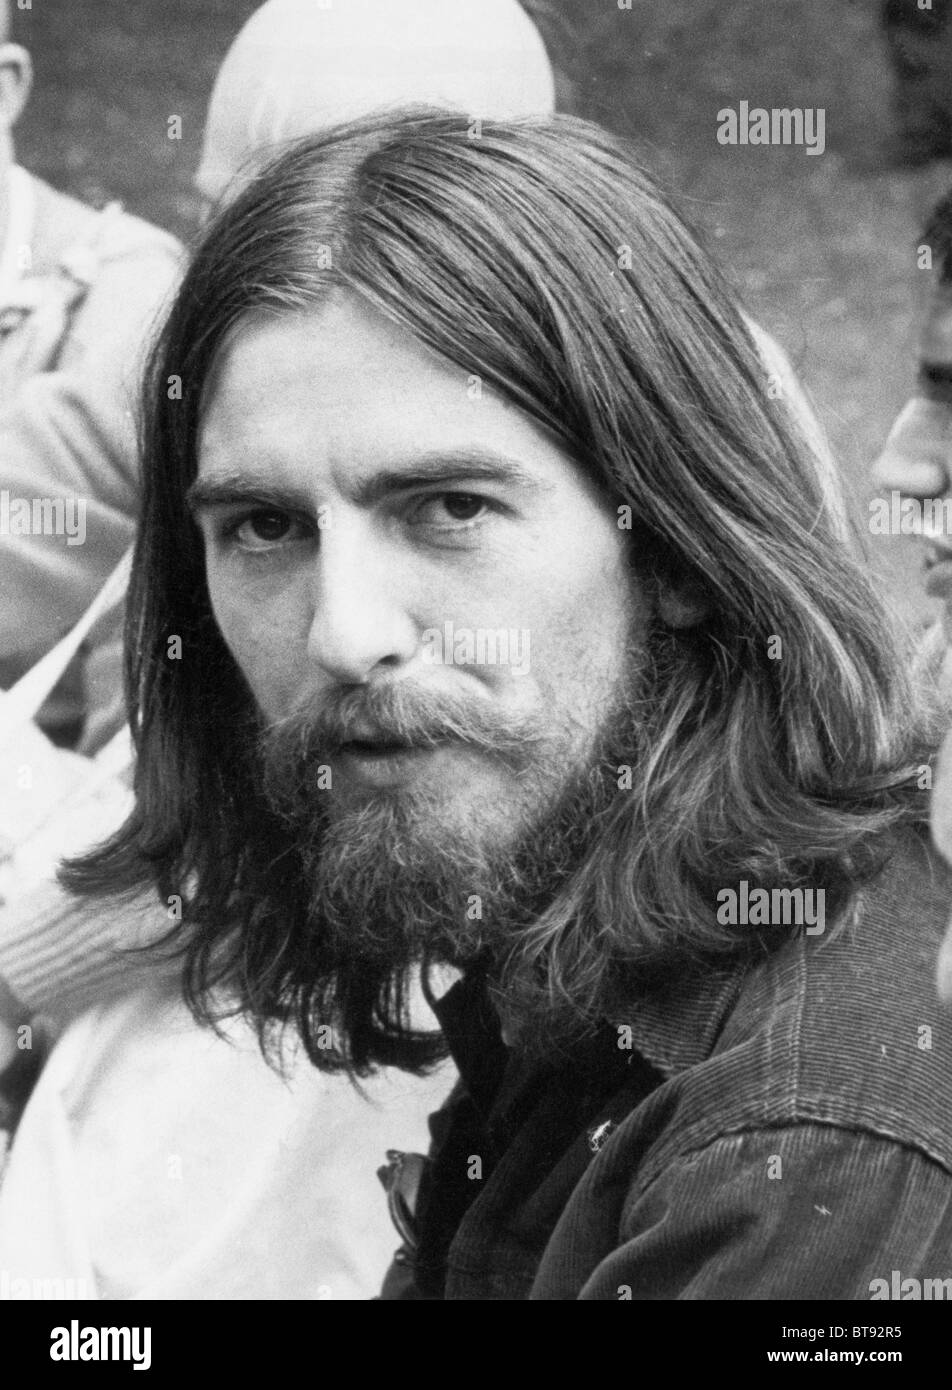 George Harrison of The Beatles pictured at Krishna Temple meeting in London, Thursday 28th August 1969. - Stock Image